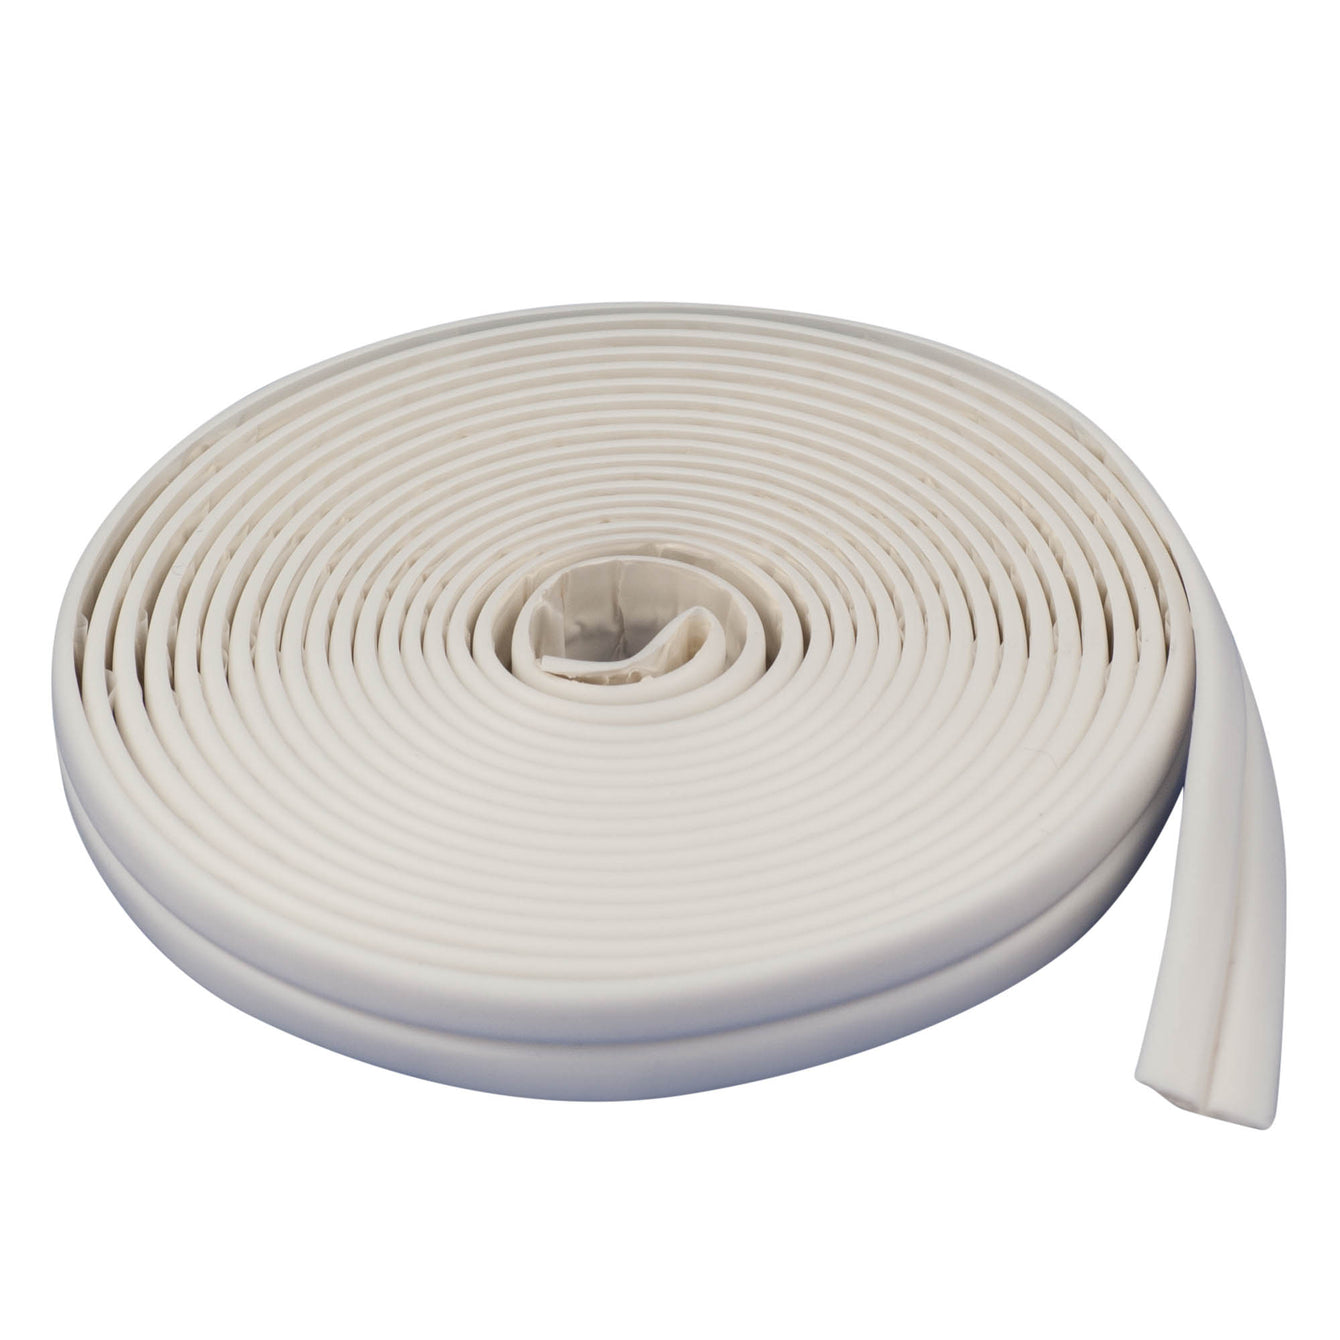 TrimSil Sealing Strip Bath or Wall 22mm x 3.35m White Replaces Silicone Sealant - Buy It Better Default Title